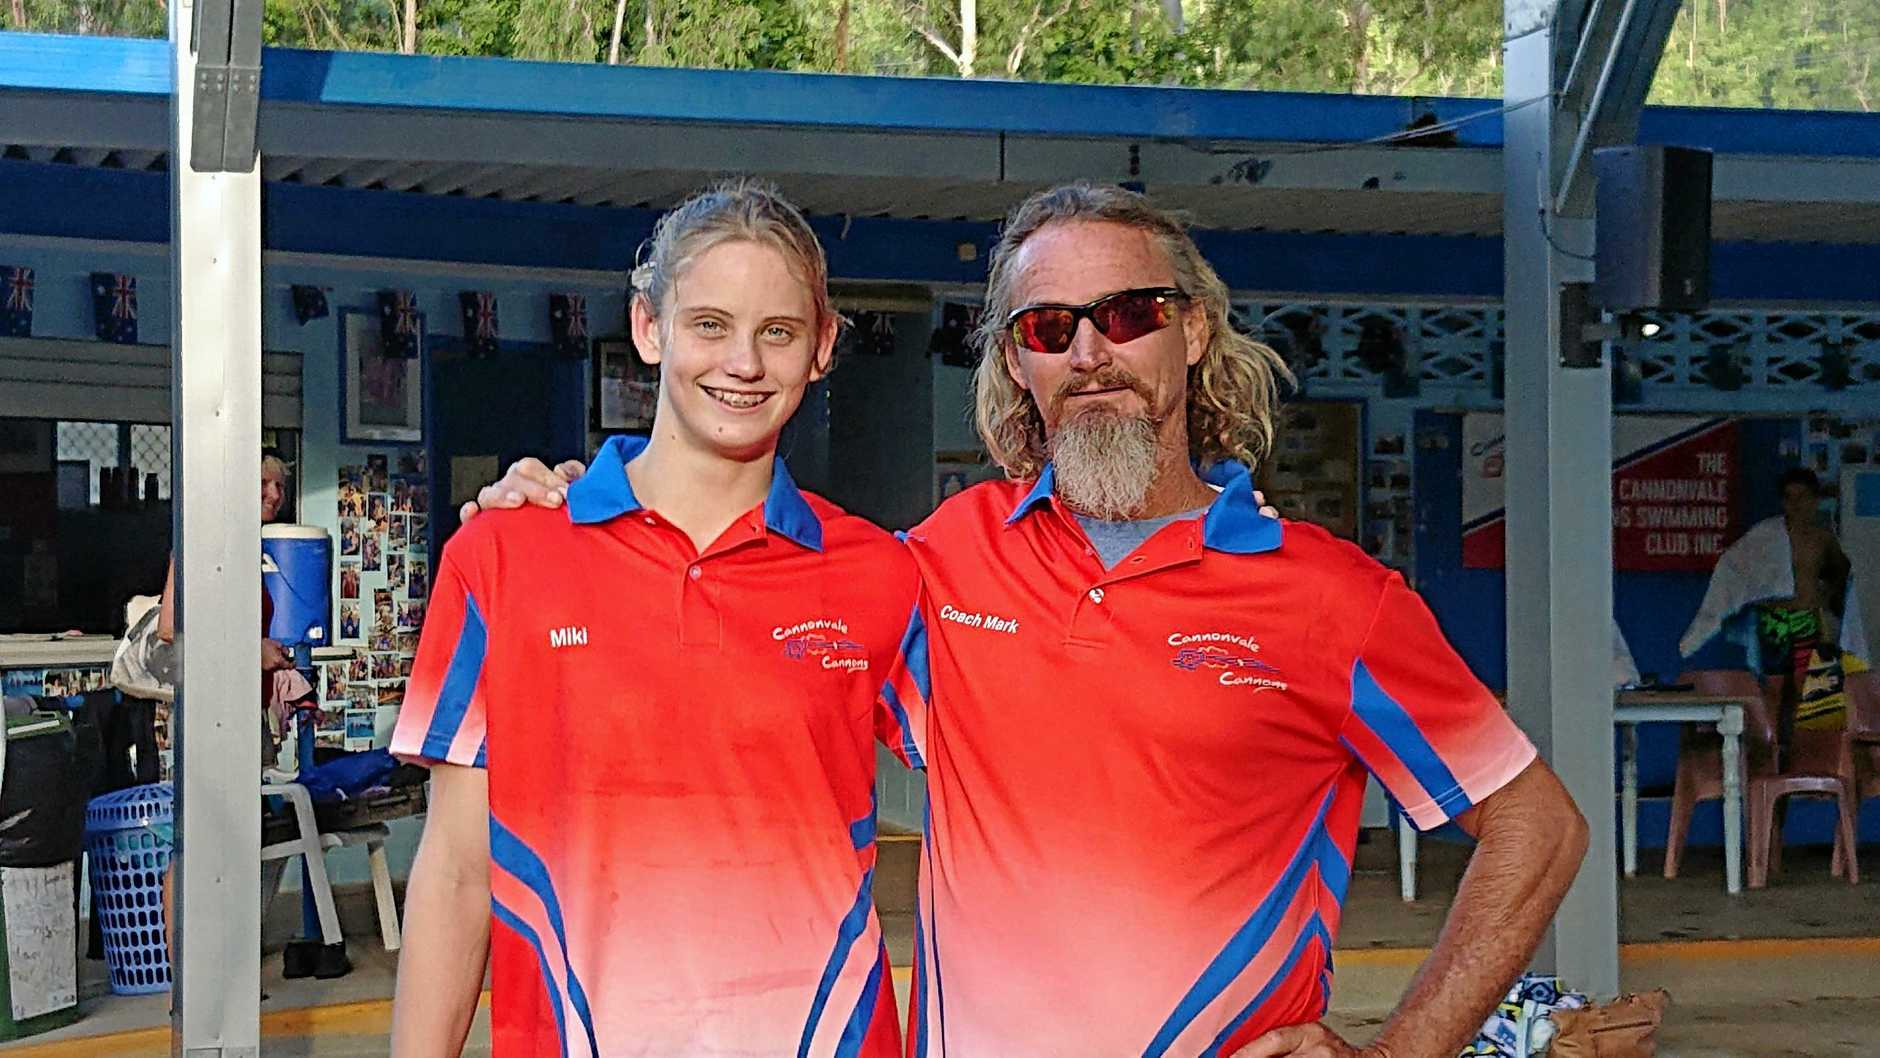 IN FORM: Cannonvale Cannons swimmer Mikhaila Flint and coach Mark Erickson.